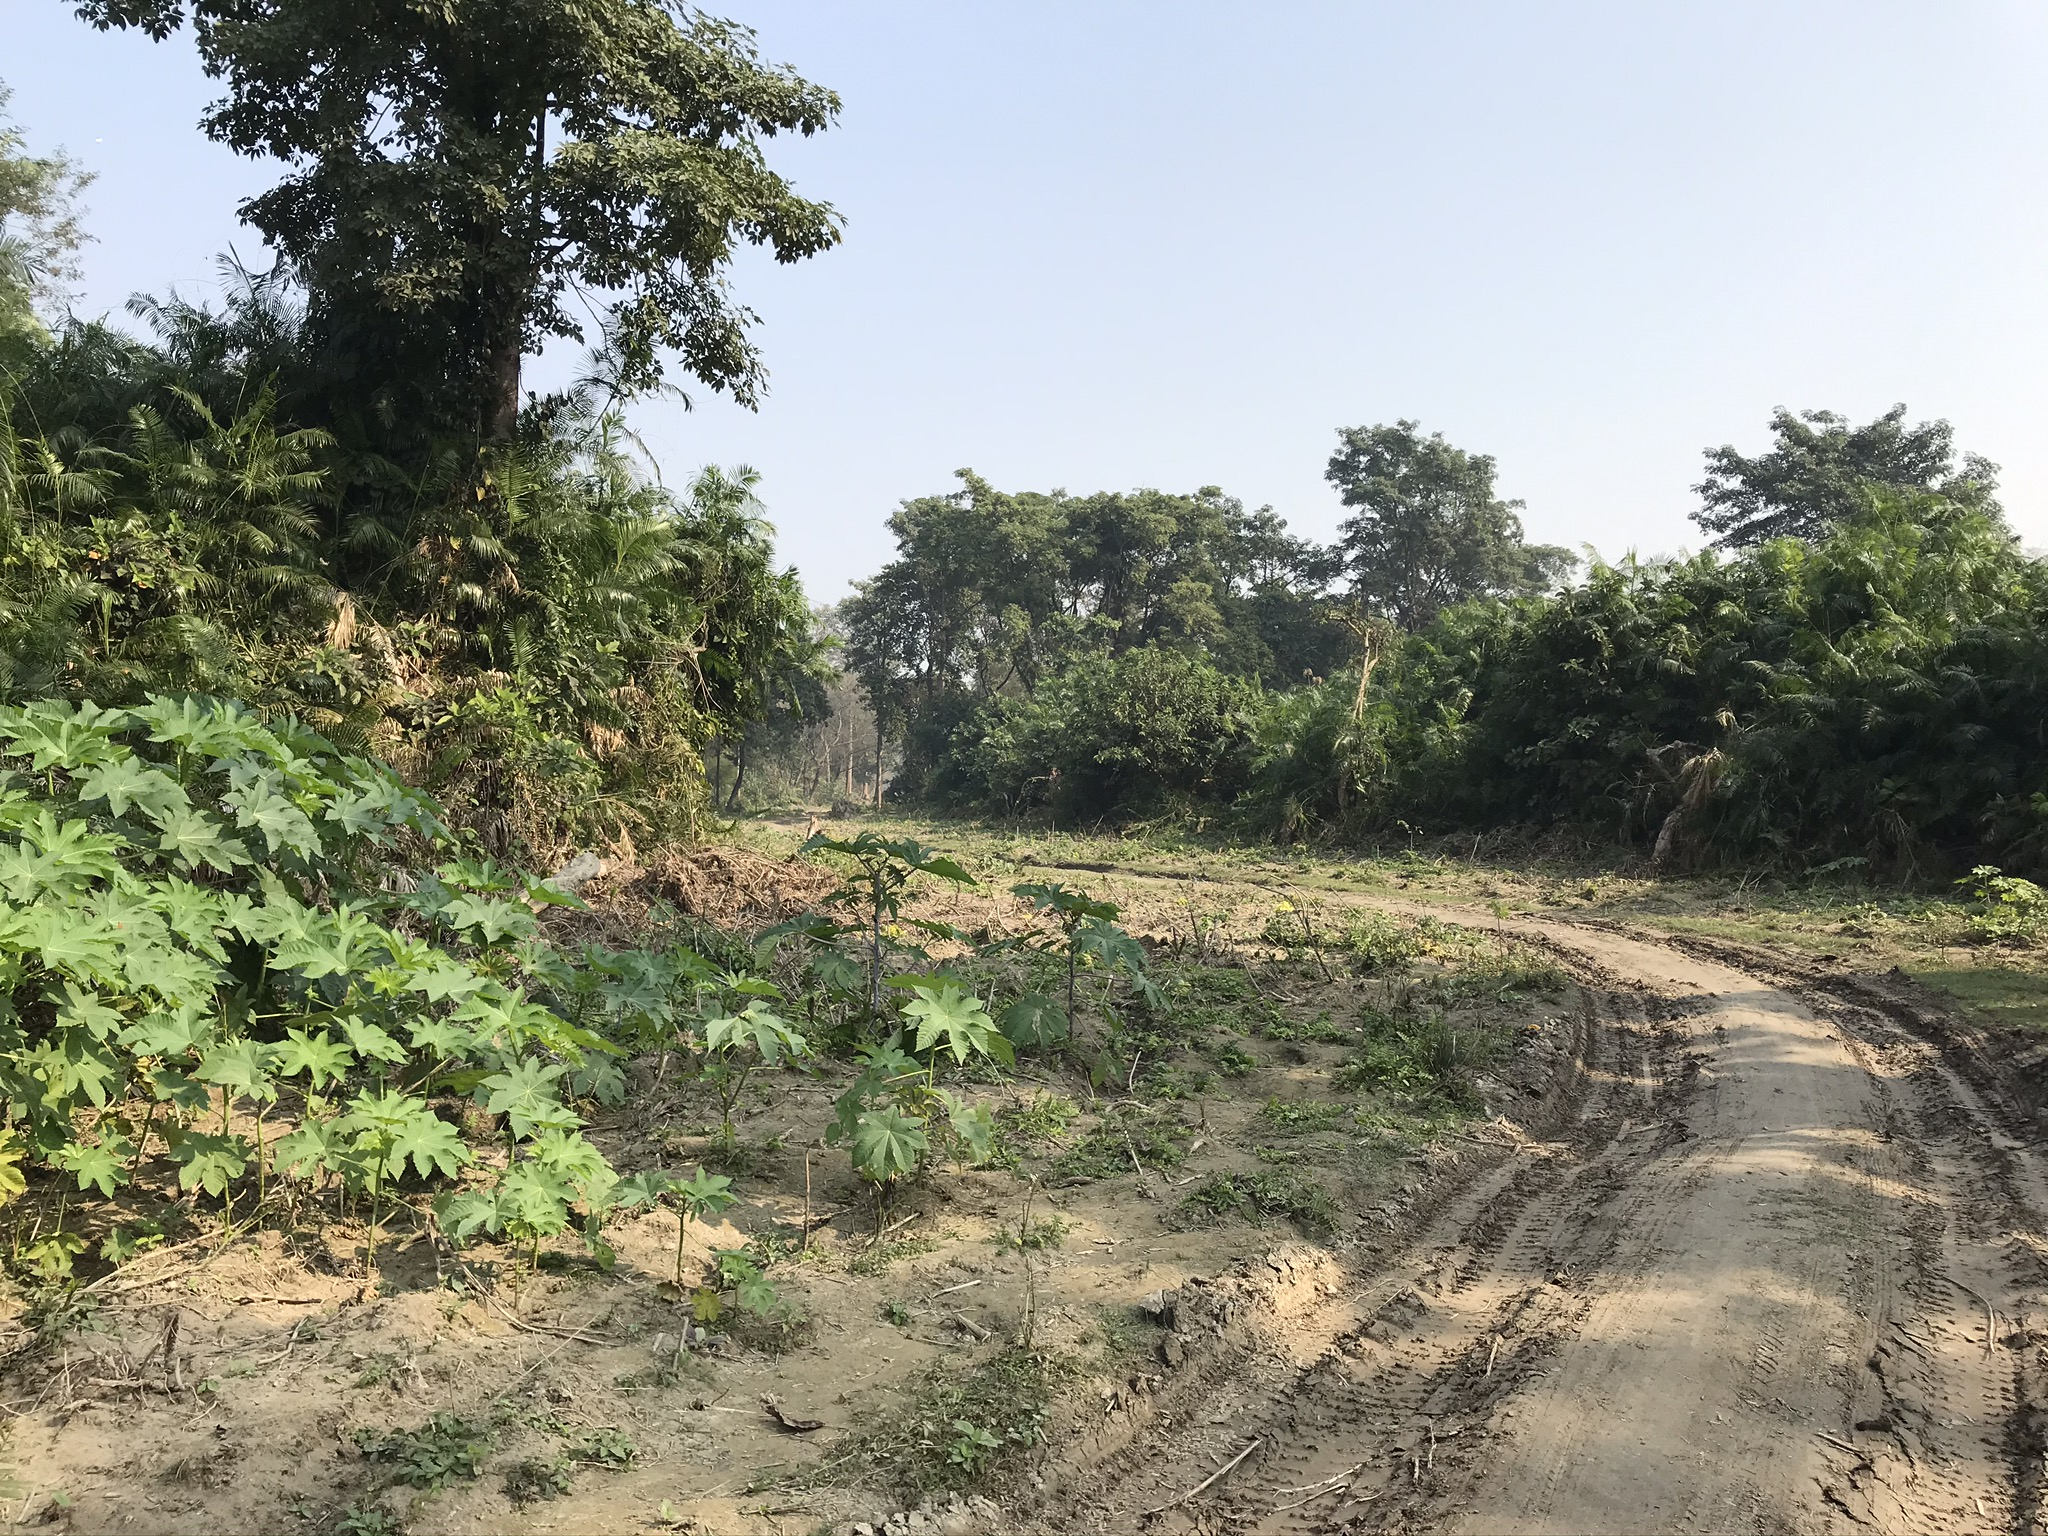 A path being cleared for a new road in tiger habitat in Nepal. Image credit: Neil Carter